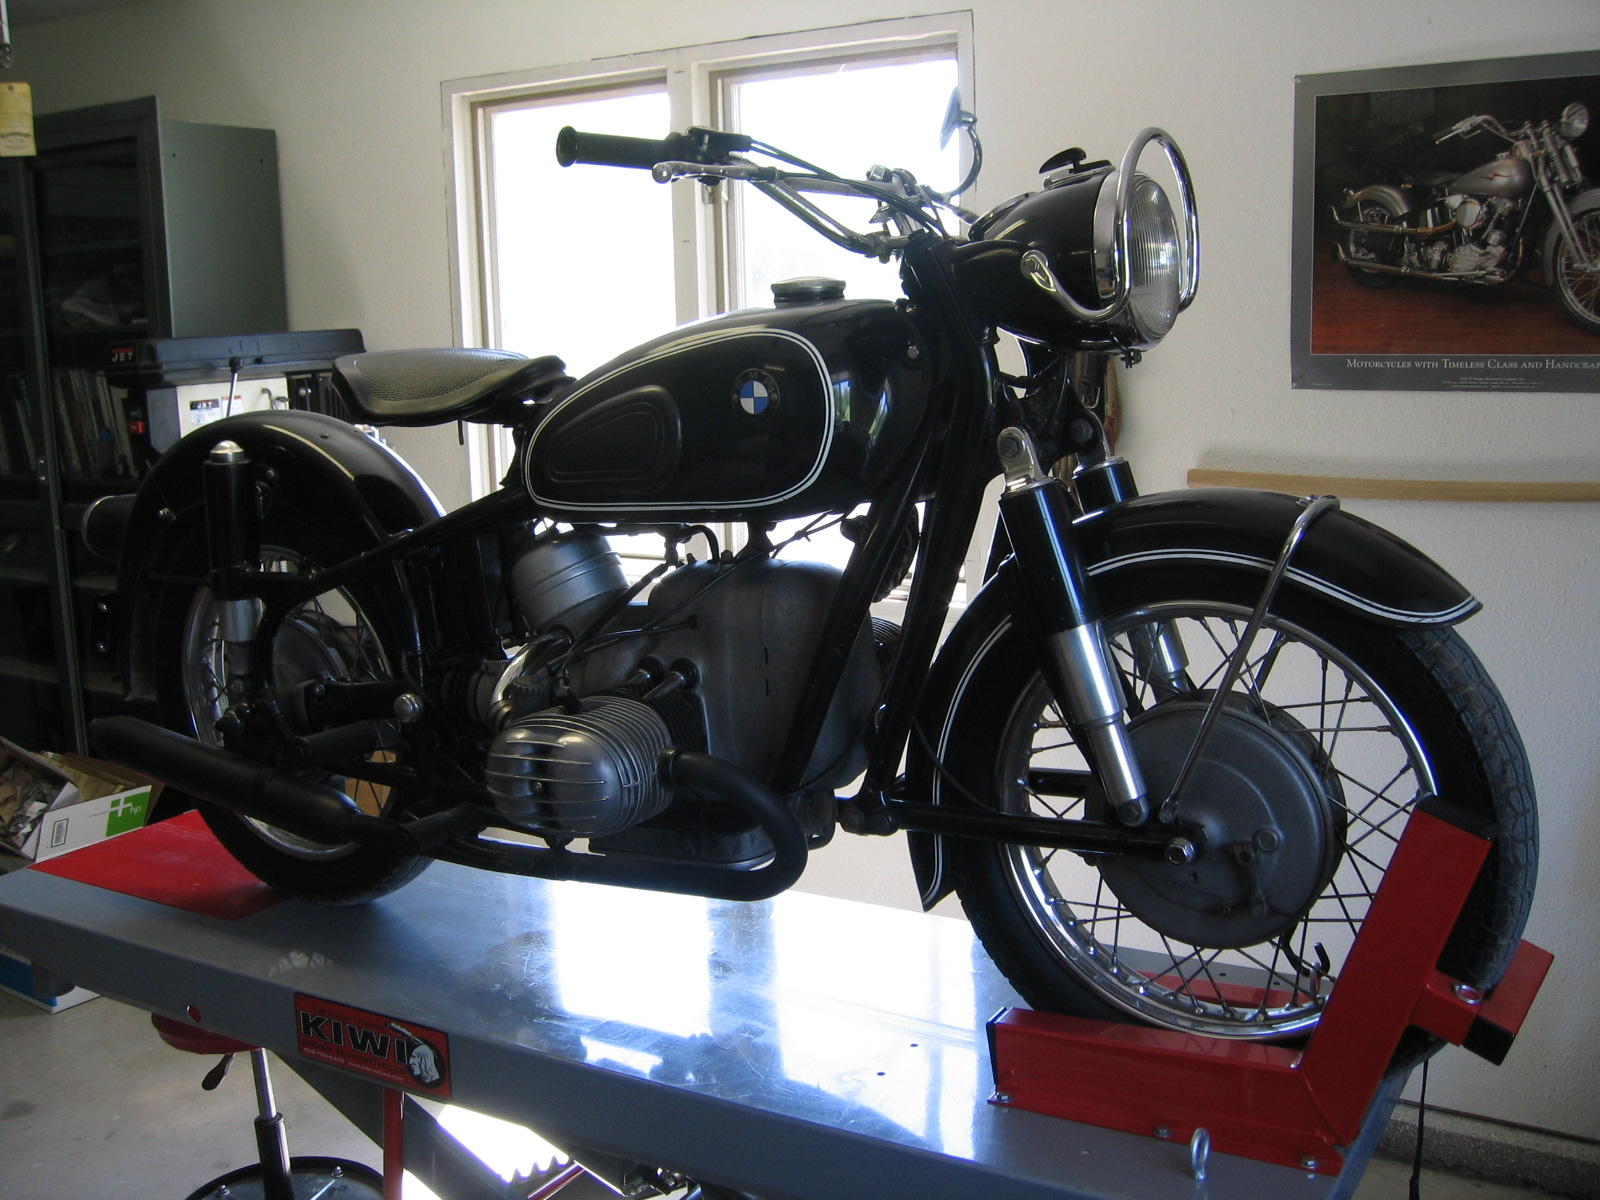 Musings Of A Motorcycle Aficionado        : My Old BMW R60/2